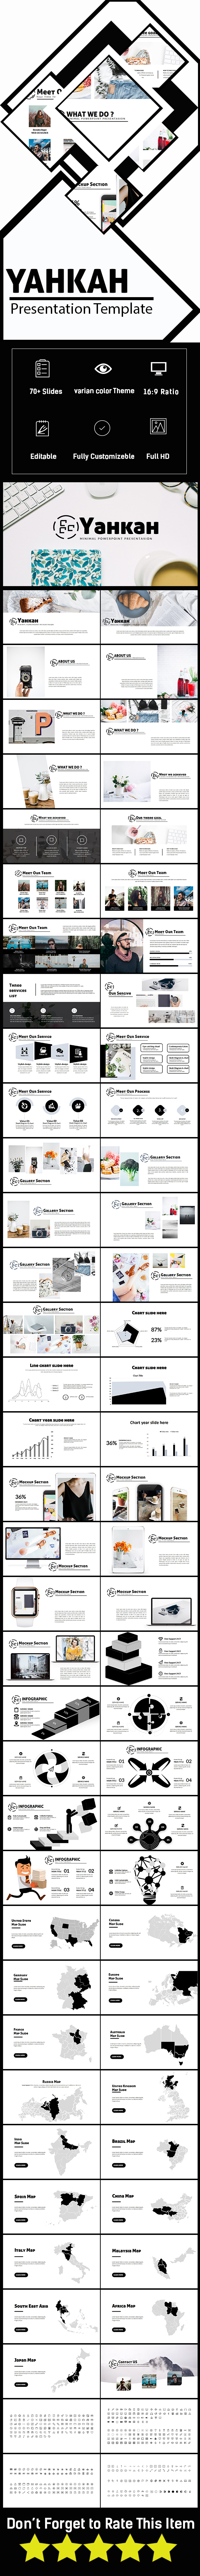 Yahkah Multipurpose Presentation - PowerPoint Templates Presentation Templates